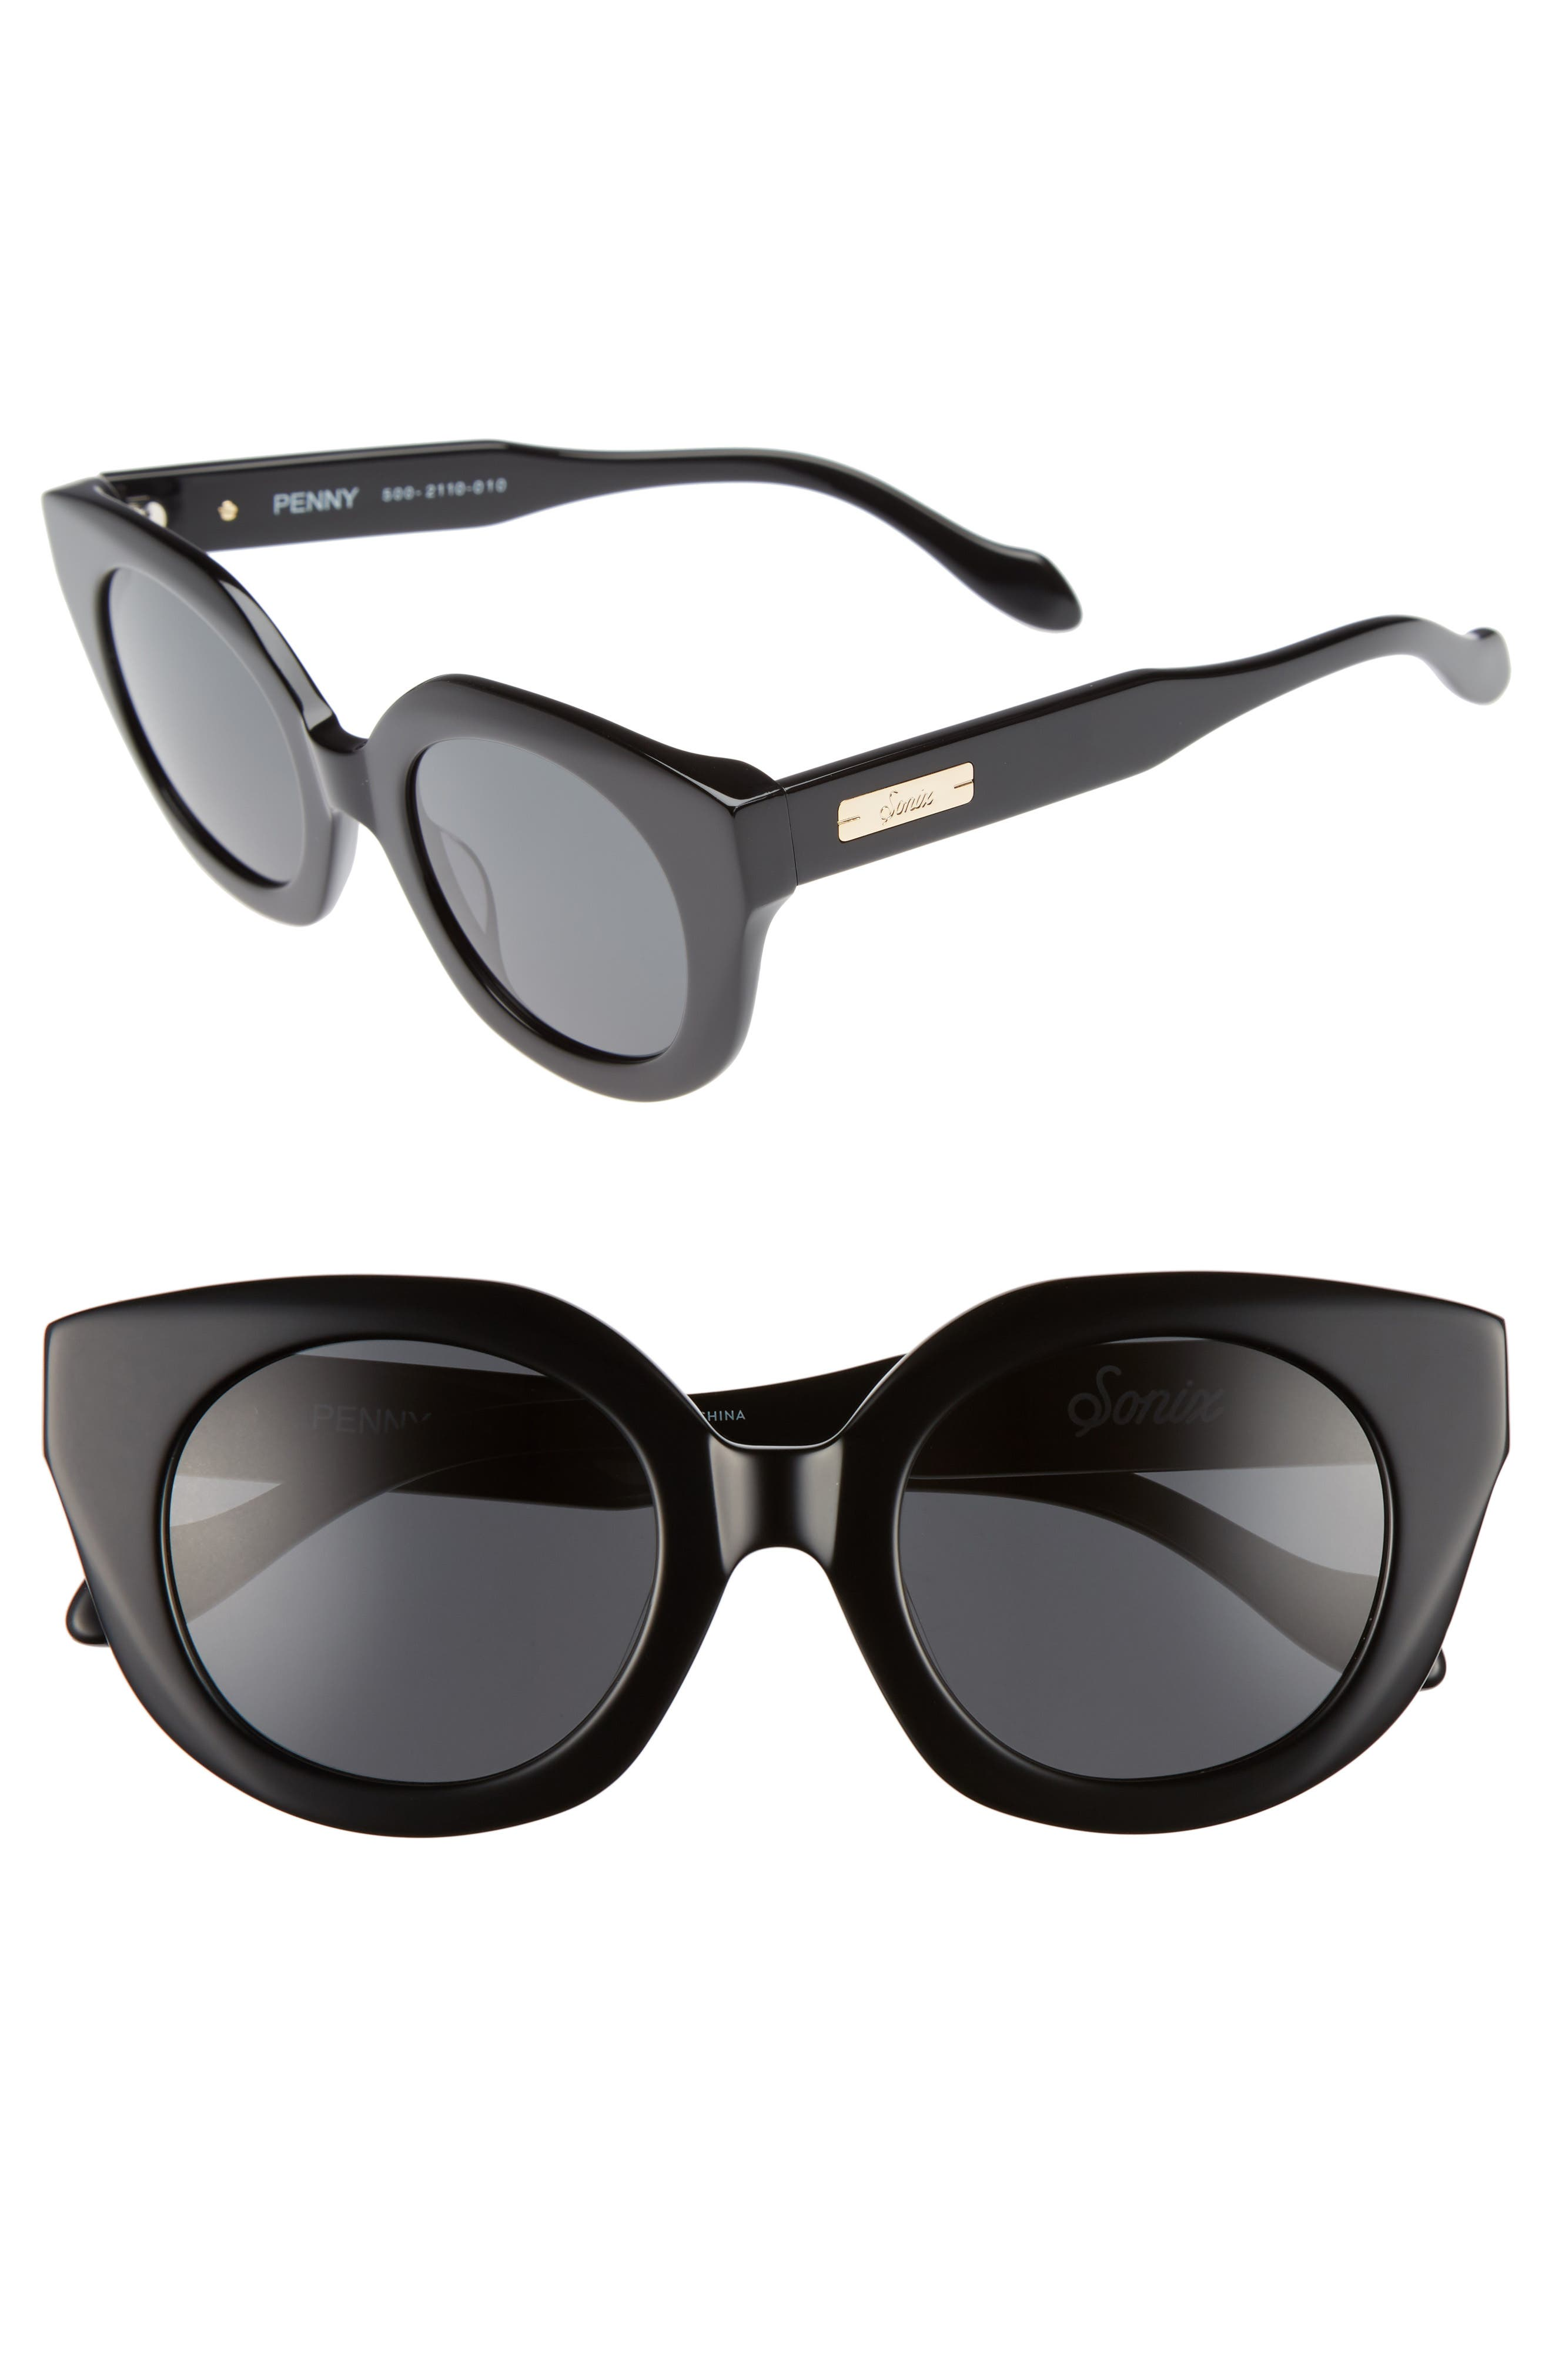 SONIX Penny 48mm Cat Eye Sunglasses